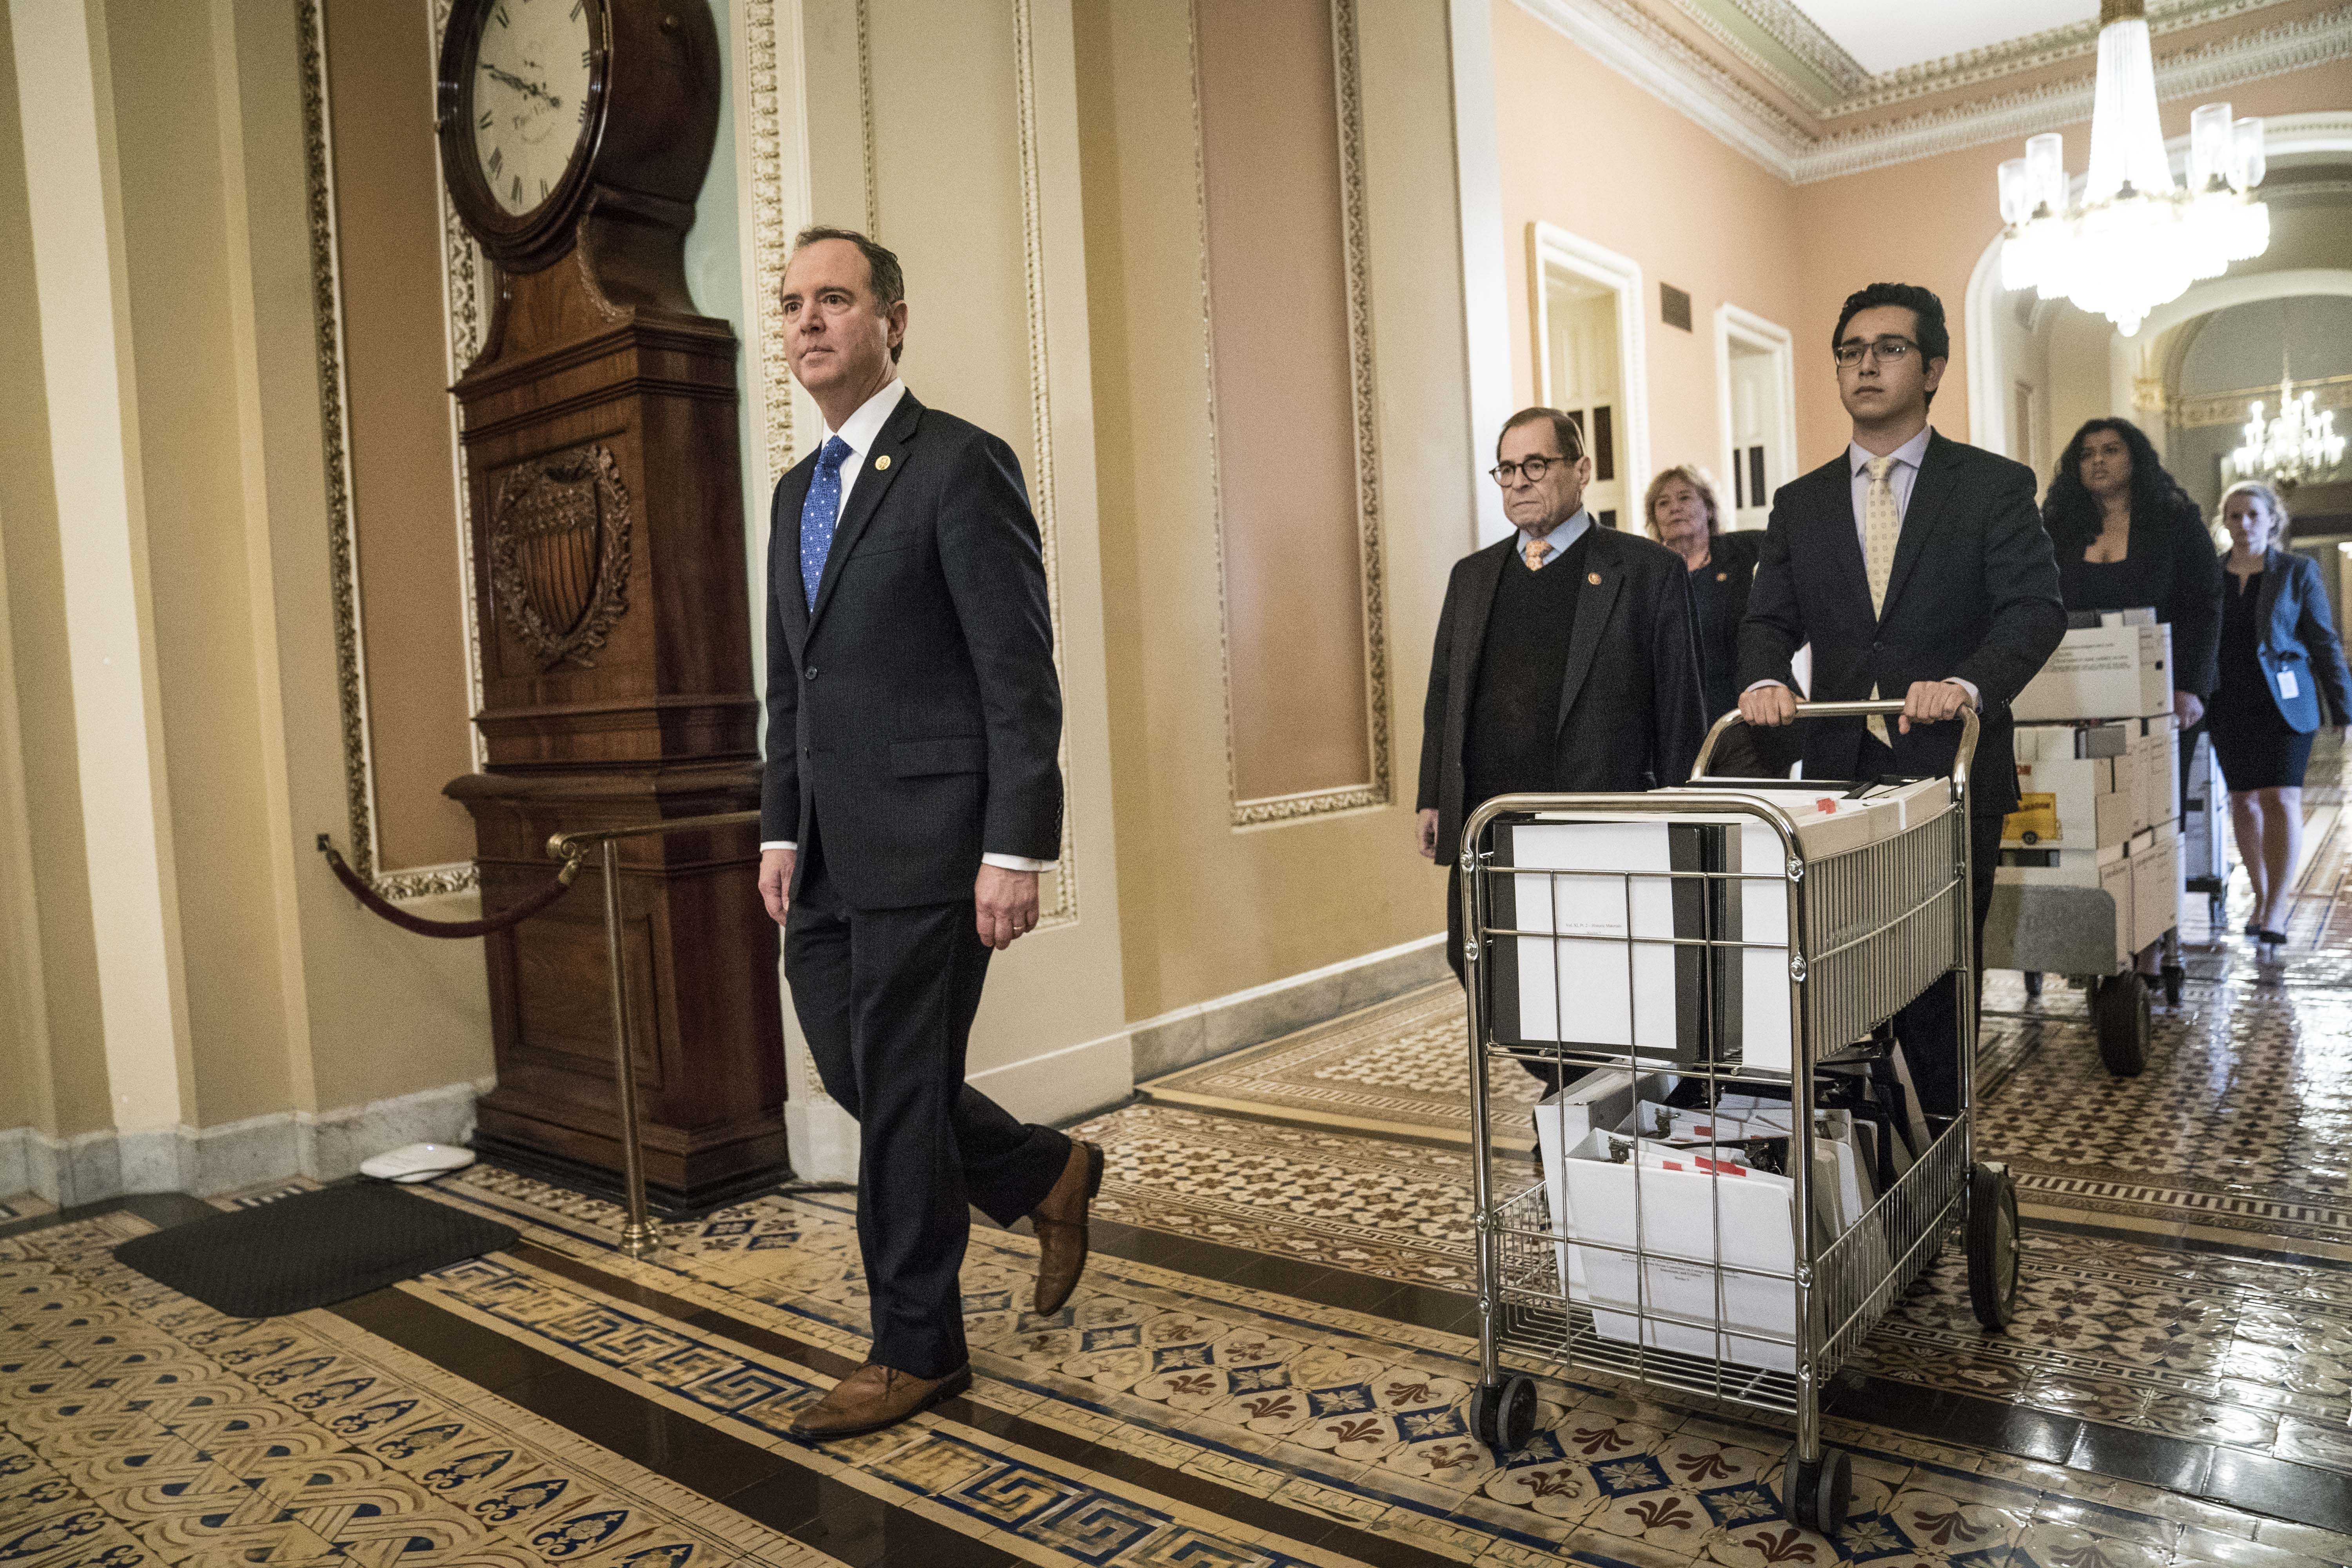 House impeachment managers Representative Adam Schiff, a Democrat from California, left, Representative Jerry Nadler, a Democrat from New York, center, and Representative Zoe Lofgren, a Democrat from California, rear, deliver new documents to the Senate floor at the U.S. Capitol in Washington, D.C., U.S., on Saturday, Jan. 25, 2020. (Photo: Sarah Silbiger/Bloomberg via getty Images